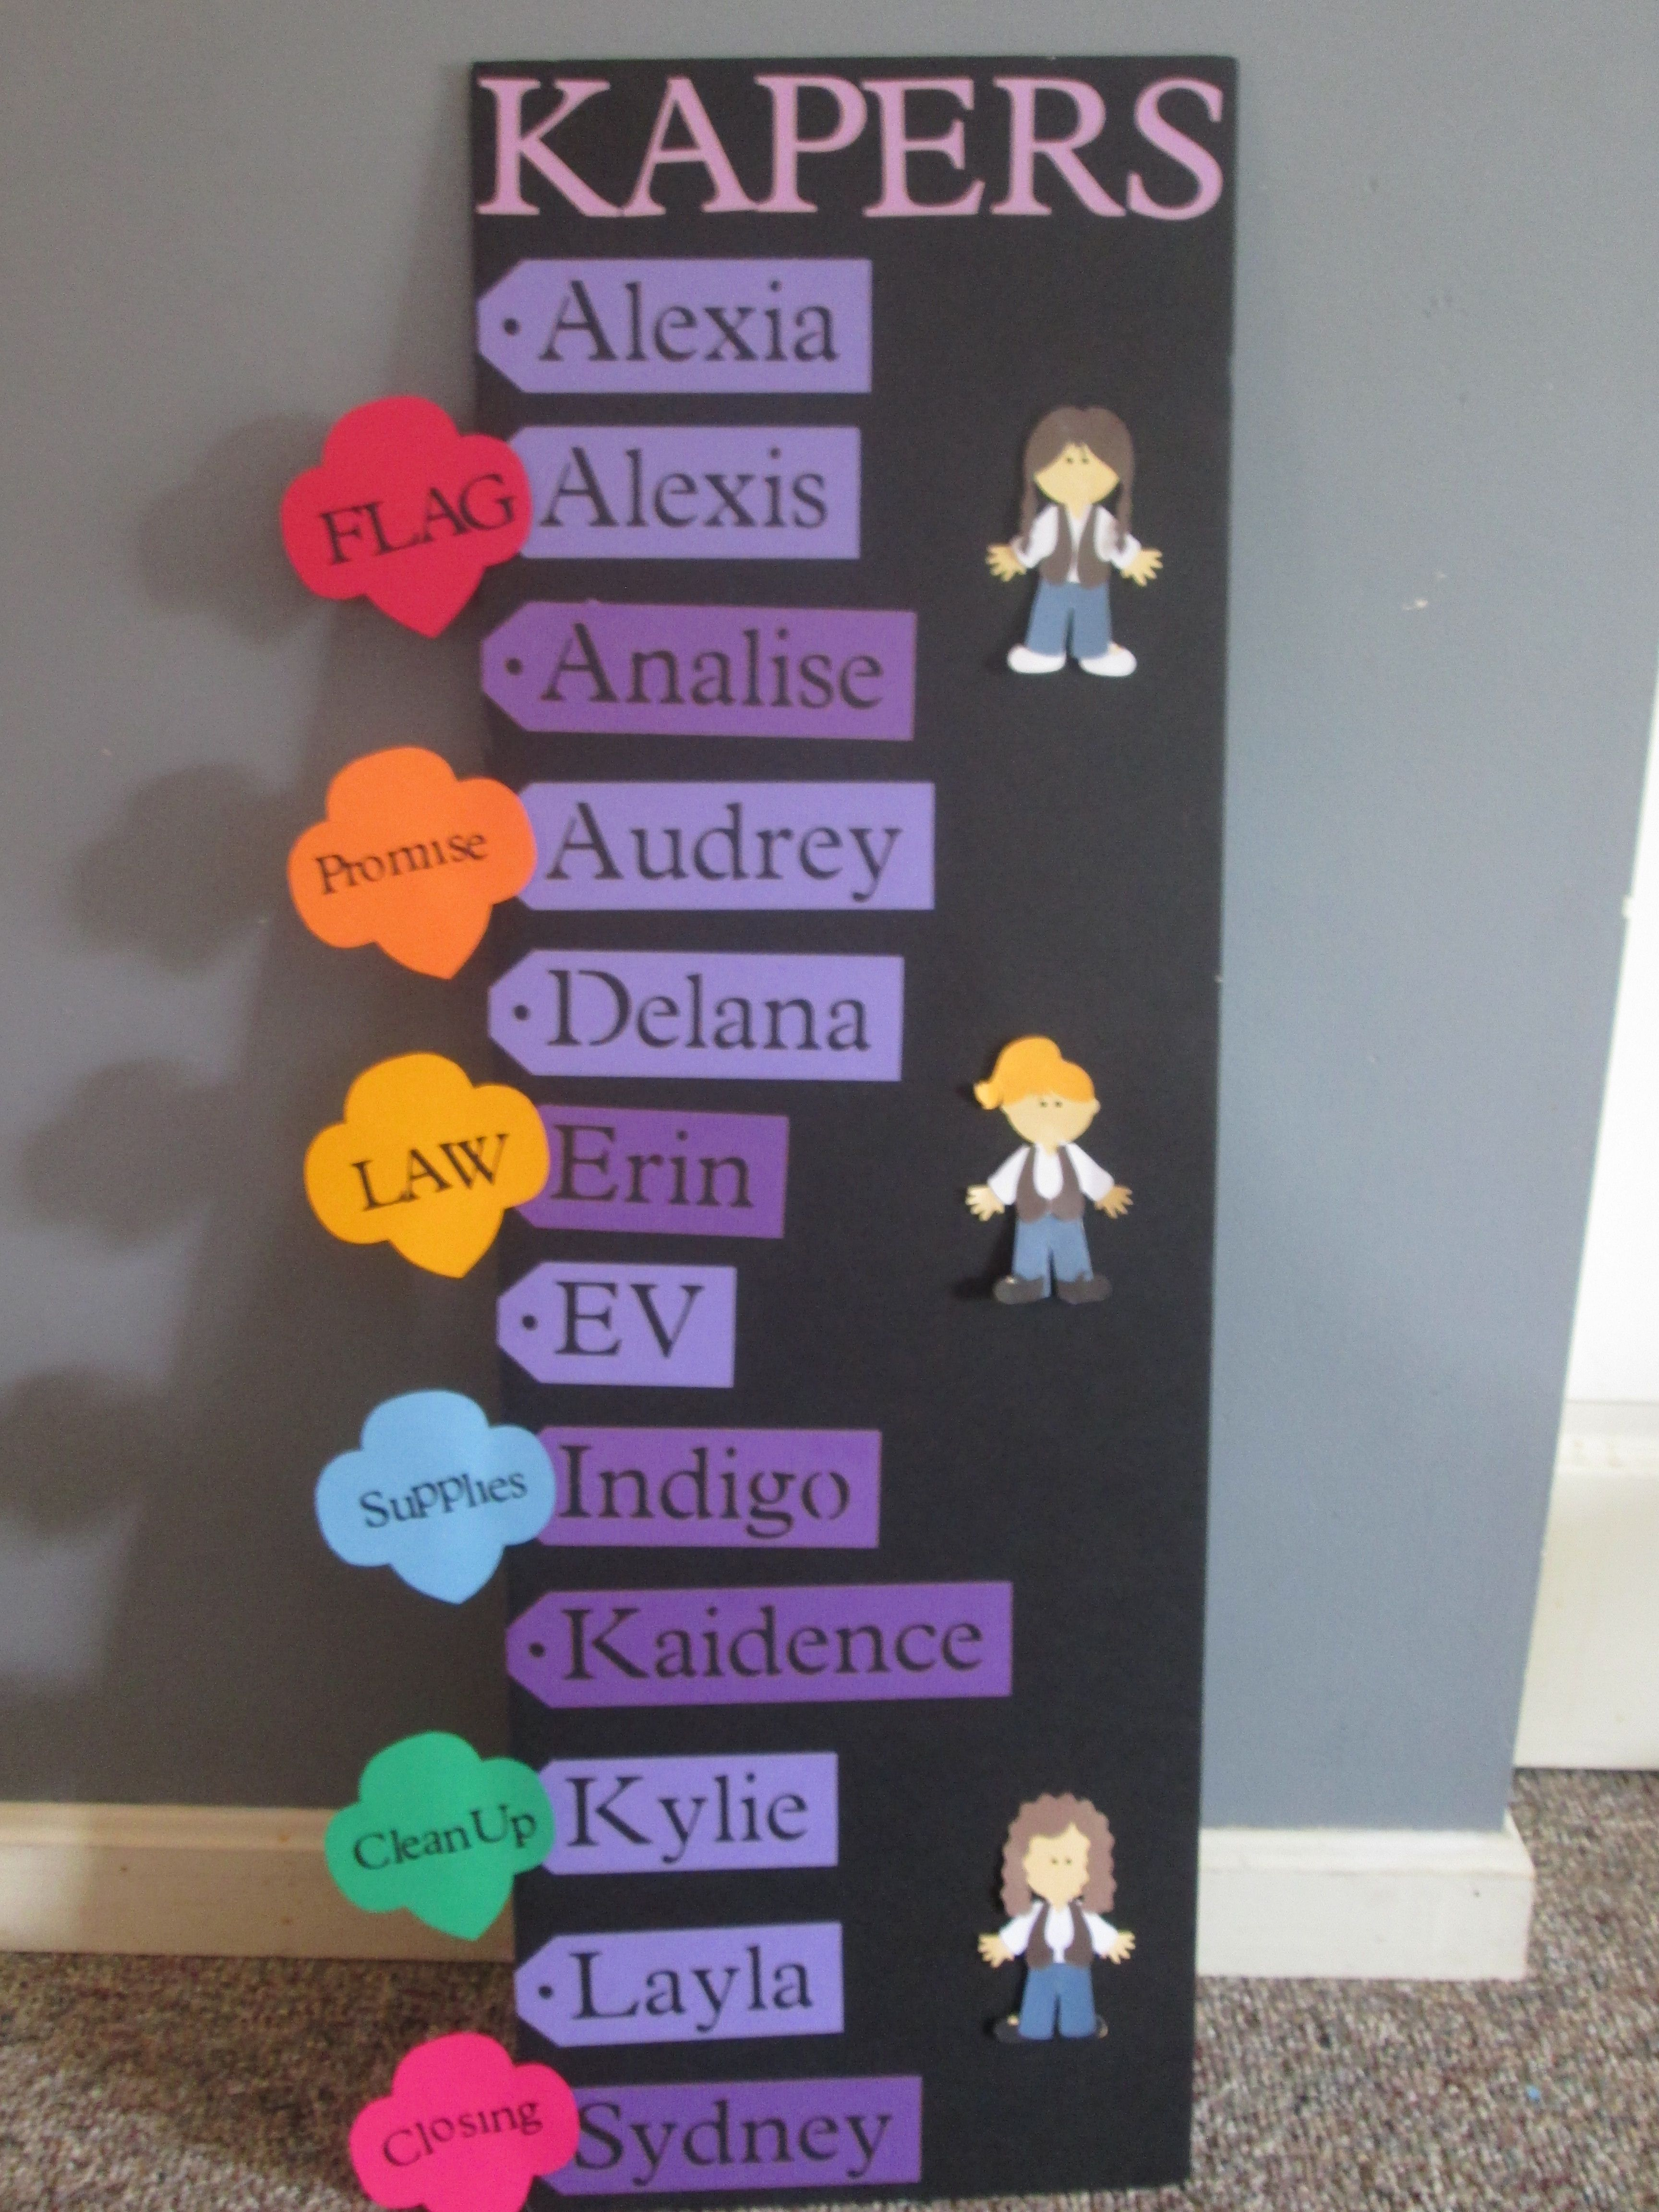 Girl scout kaper chart kapers are hot glued to clothes pins name tags were cut out using  cricut plantin schoolbook cartride paperdolls also done with rh pinterest